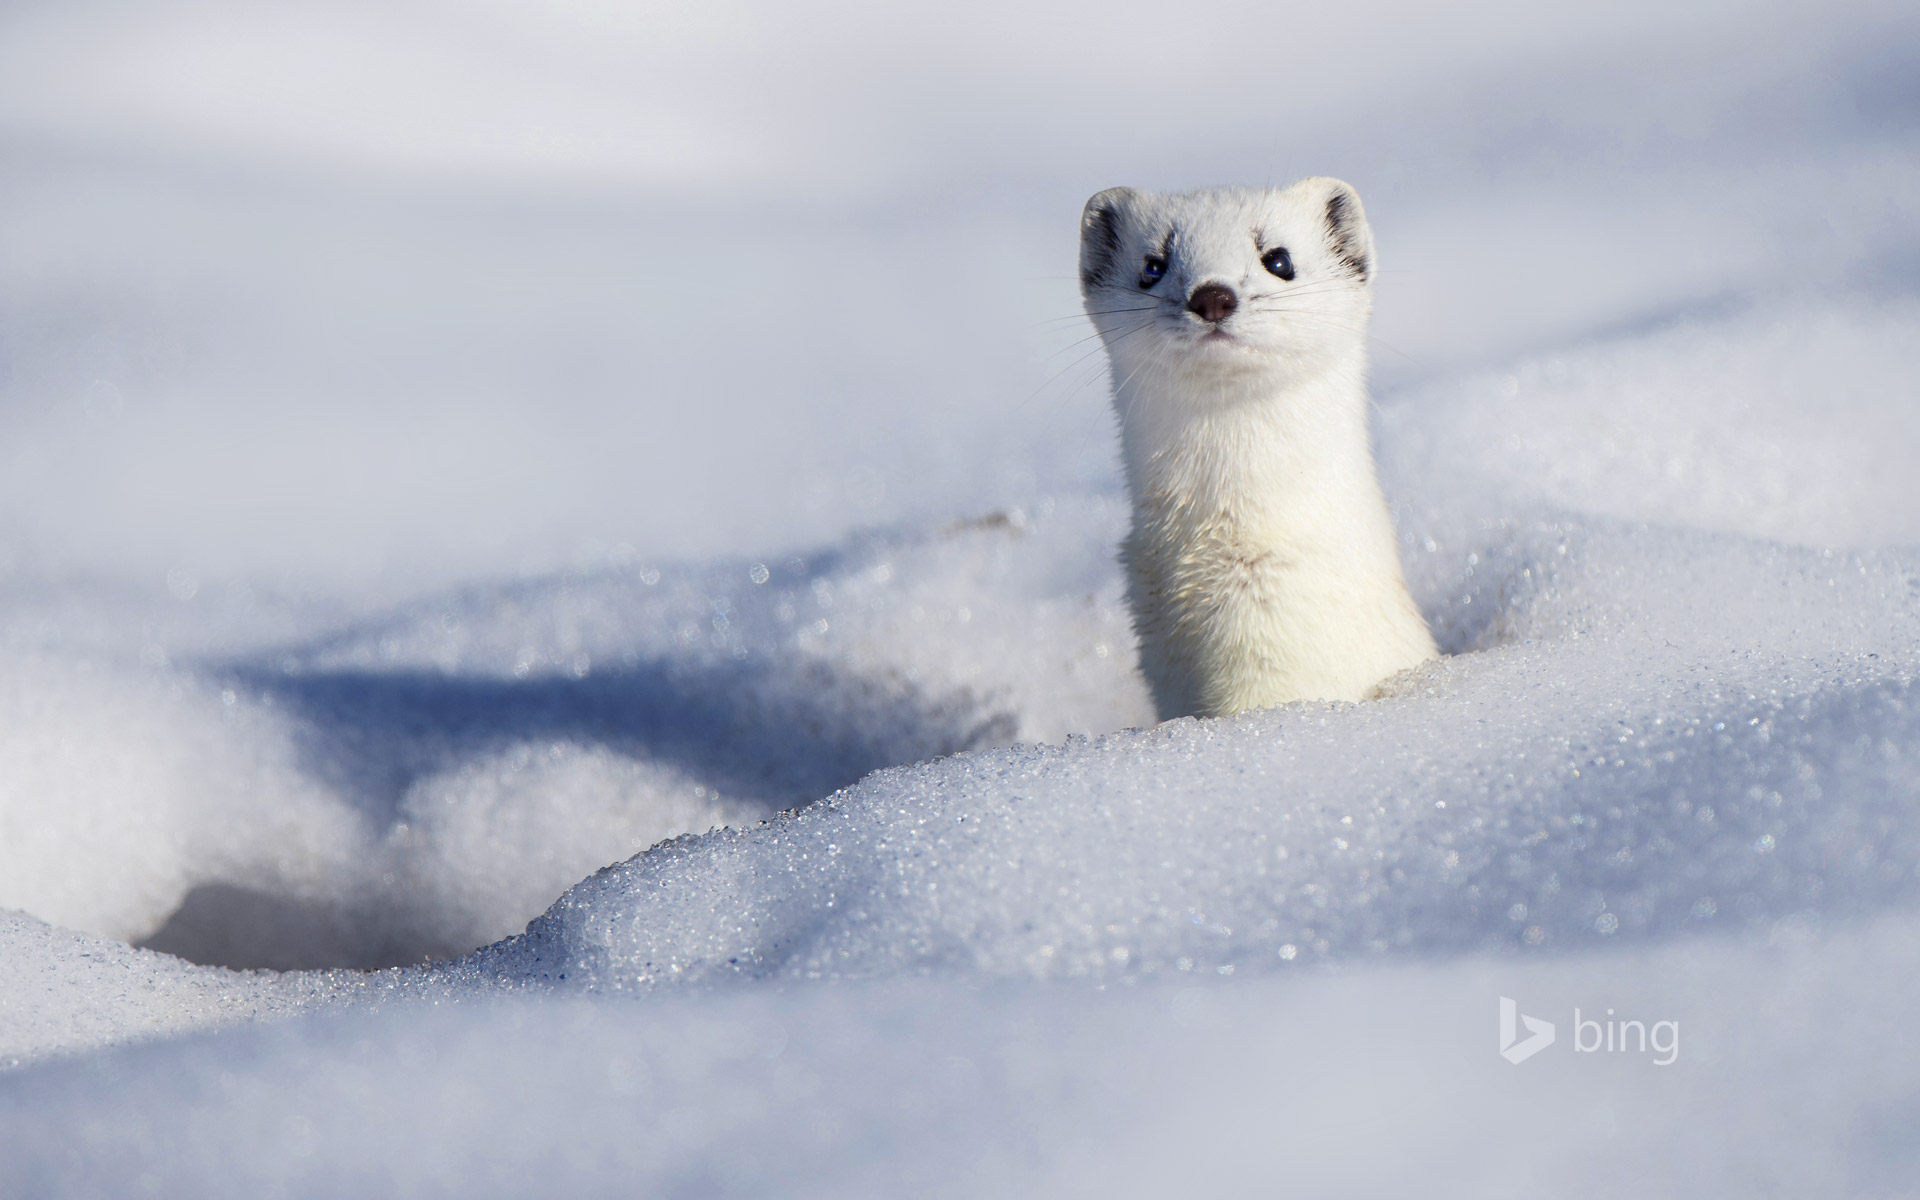 A stoat displaying its winter coat